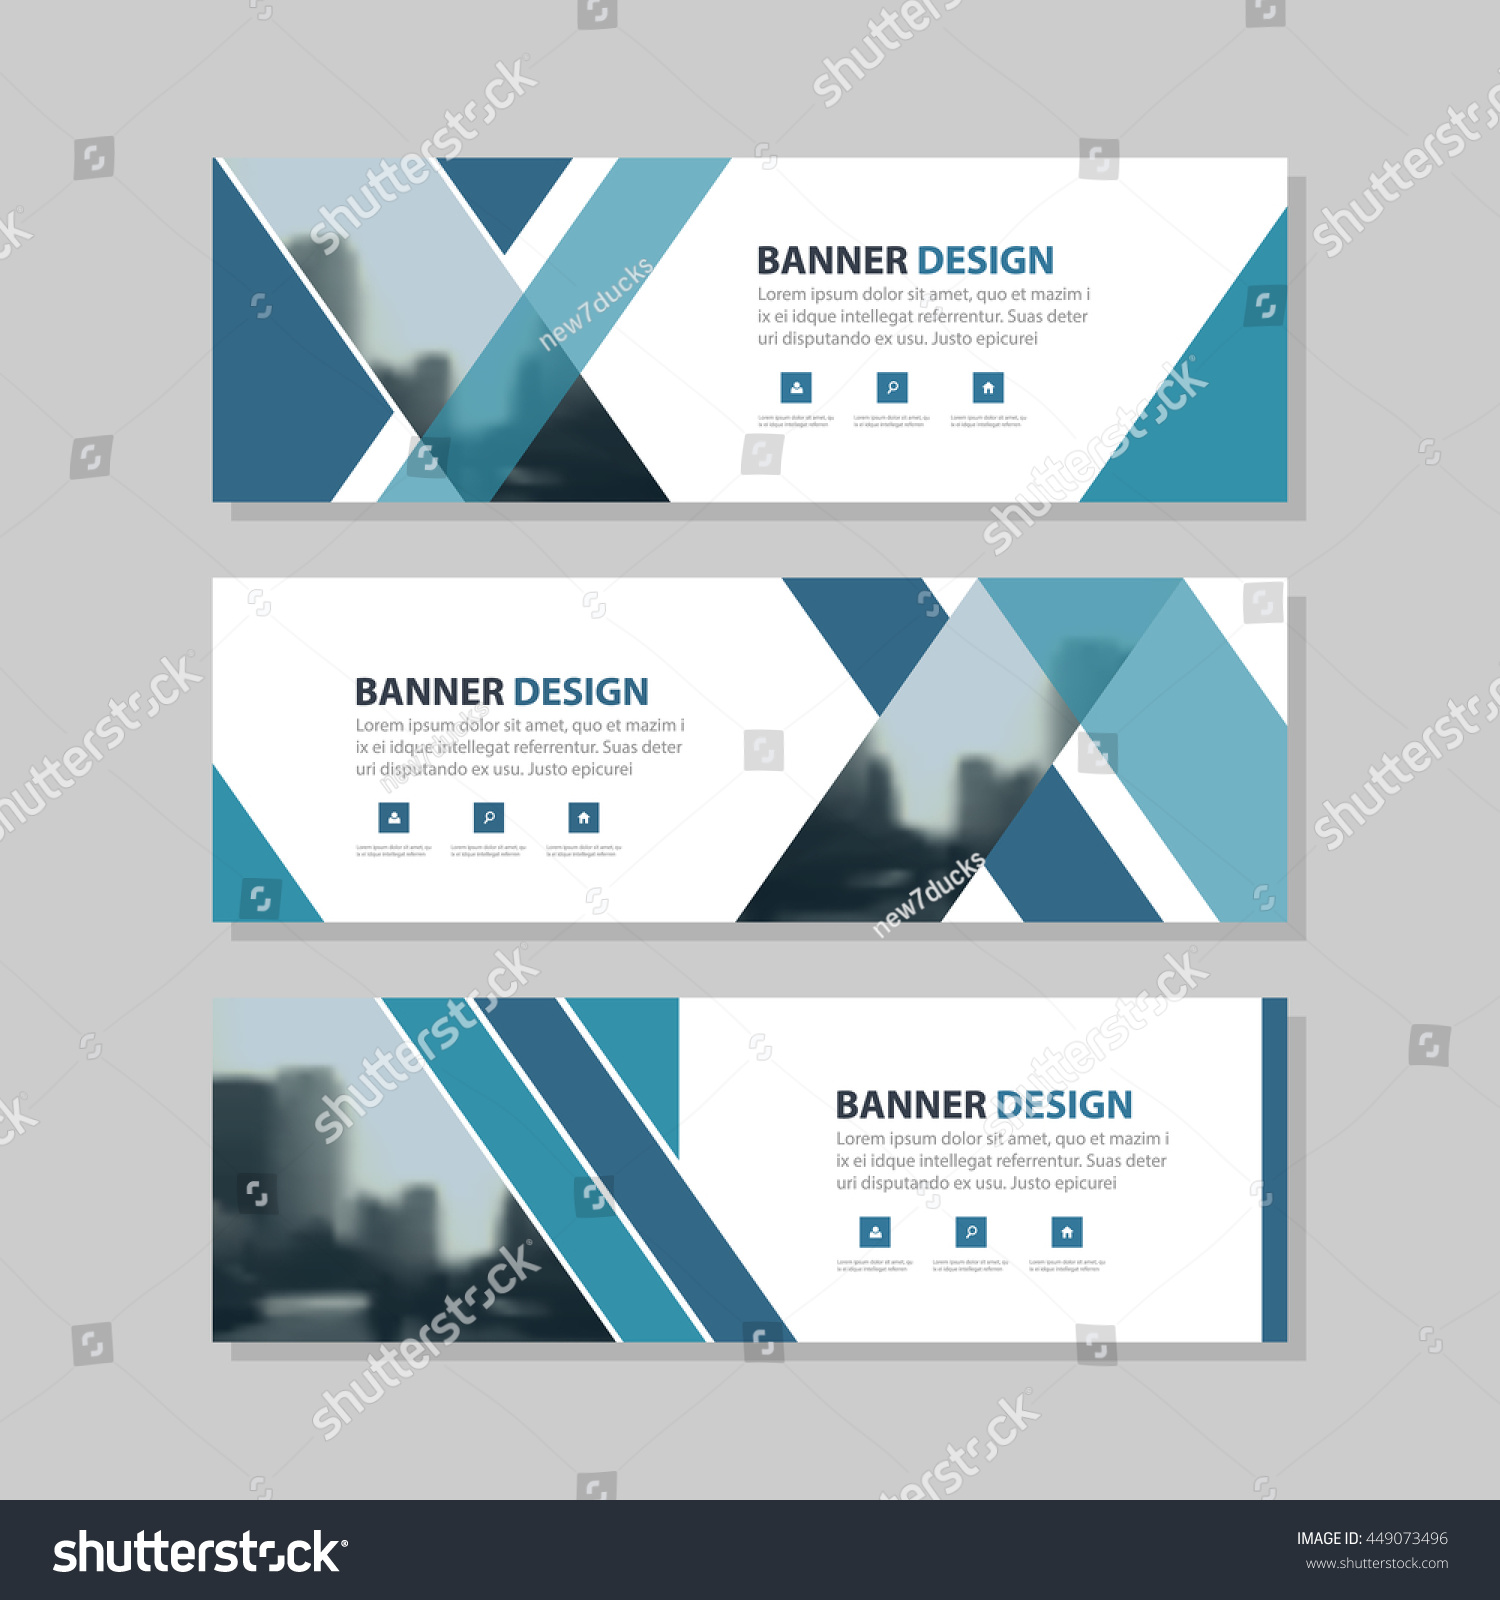 Blank Exhibition Stand Vector : Orange triangle abstract corporate business banner stock